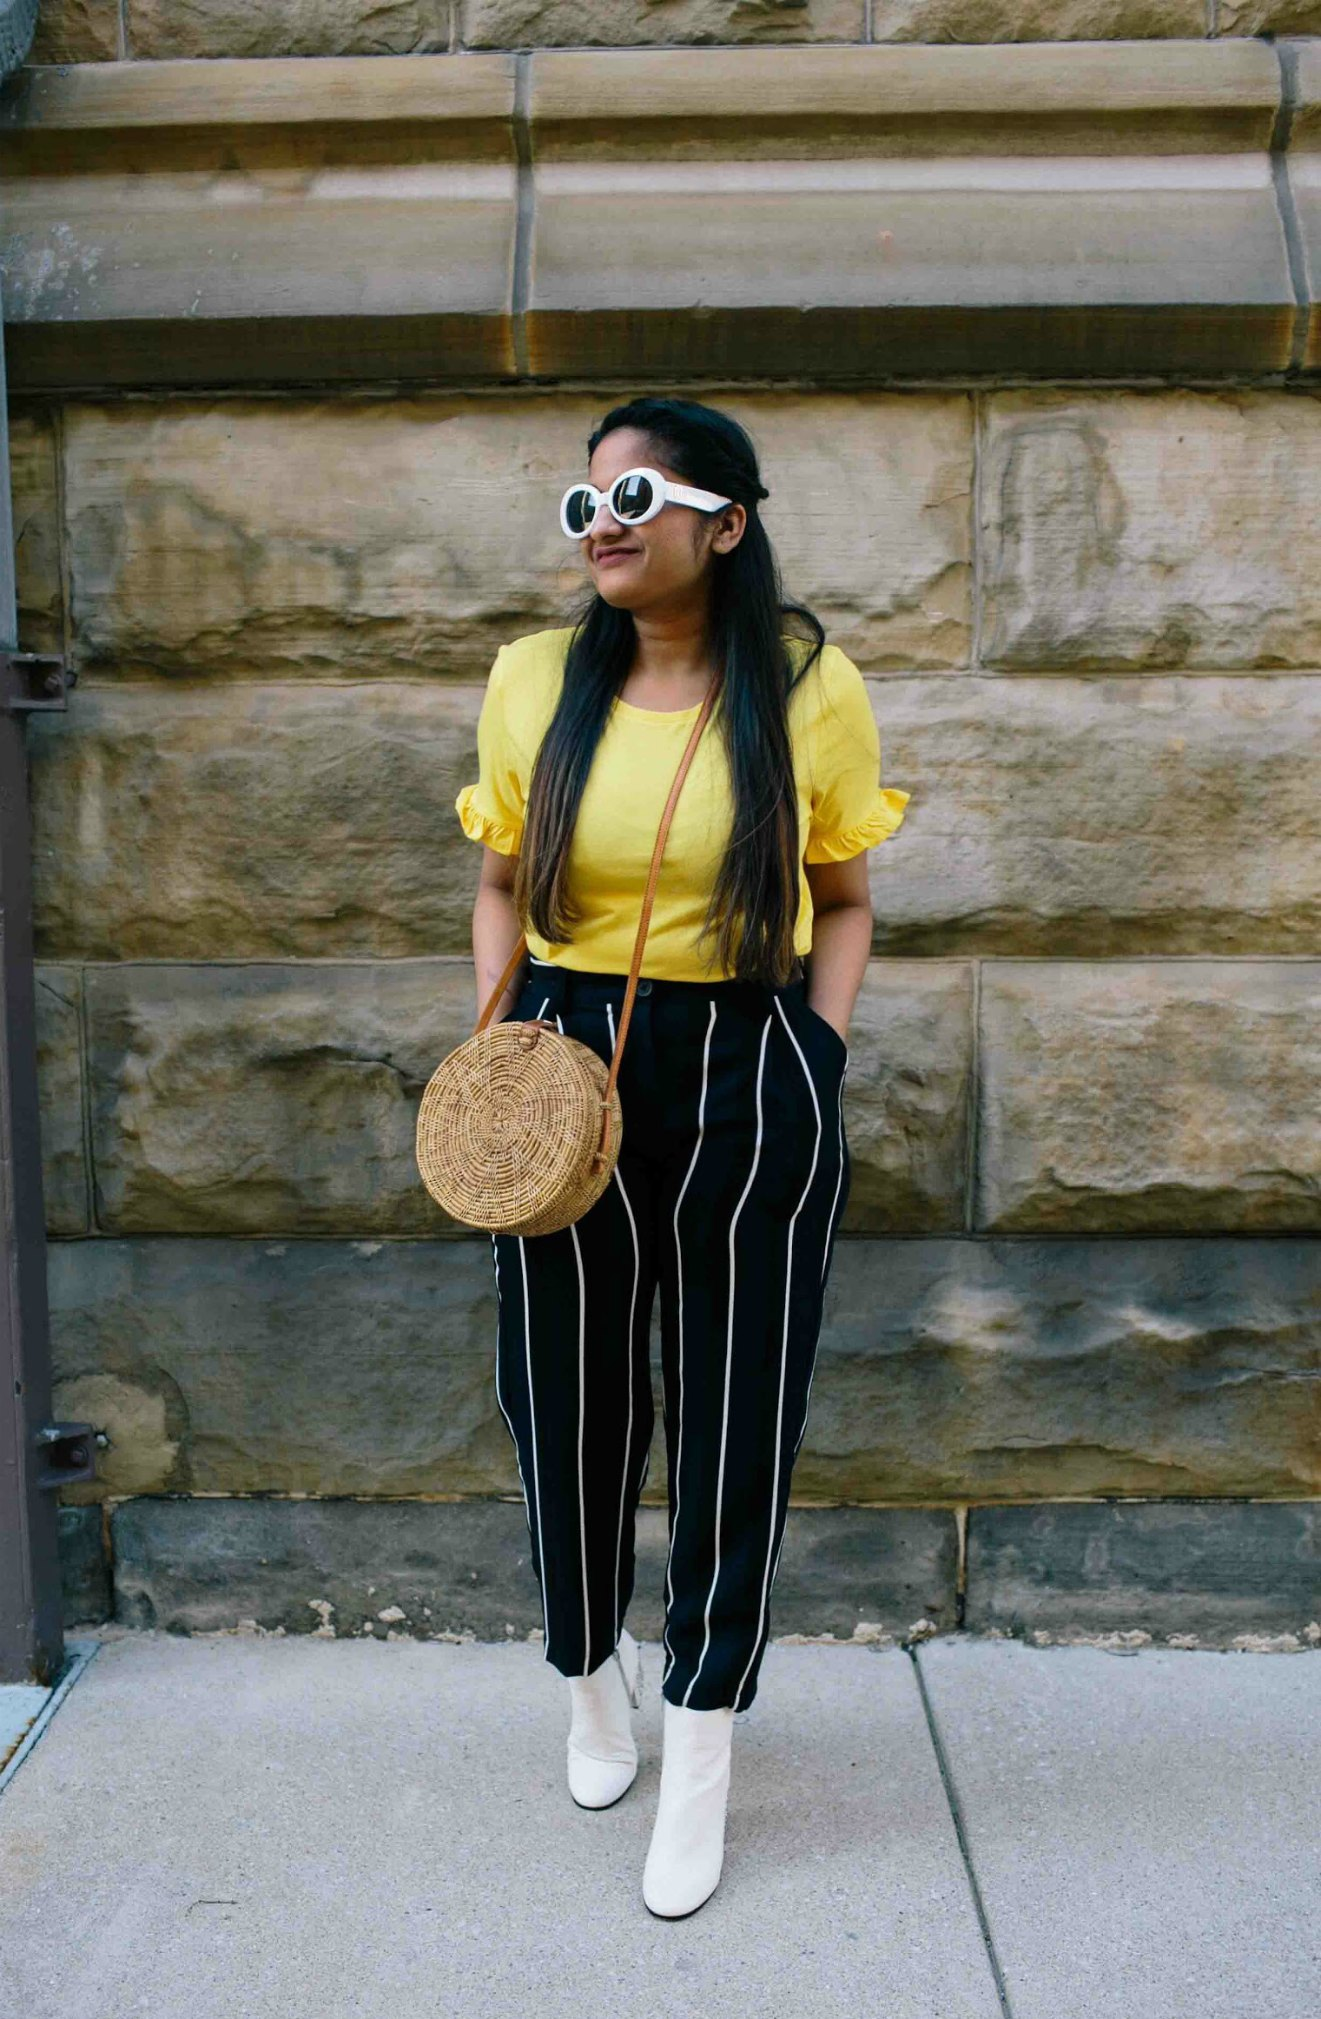 Fashion and Lifestyle blog dreaming loud sharing 2 chic and modest spring outfits from Nakd Fashion